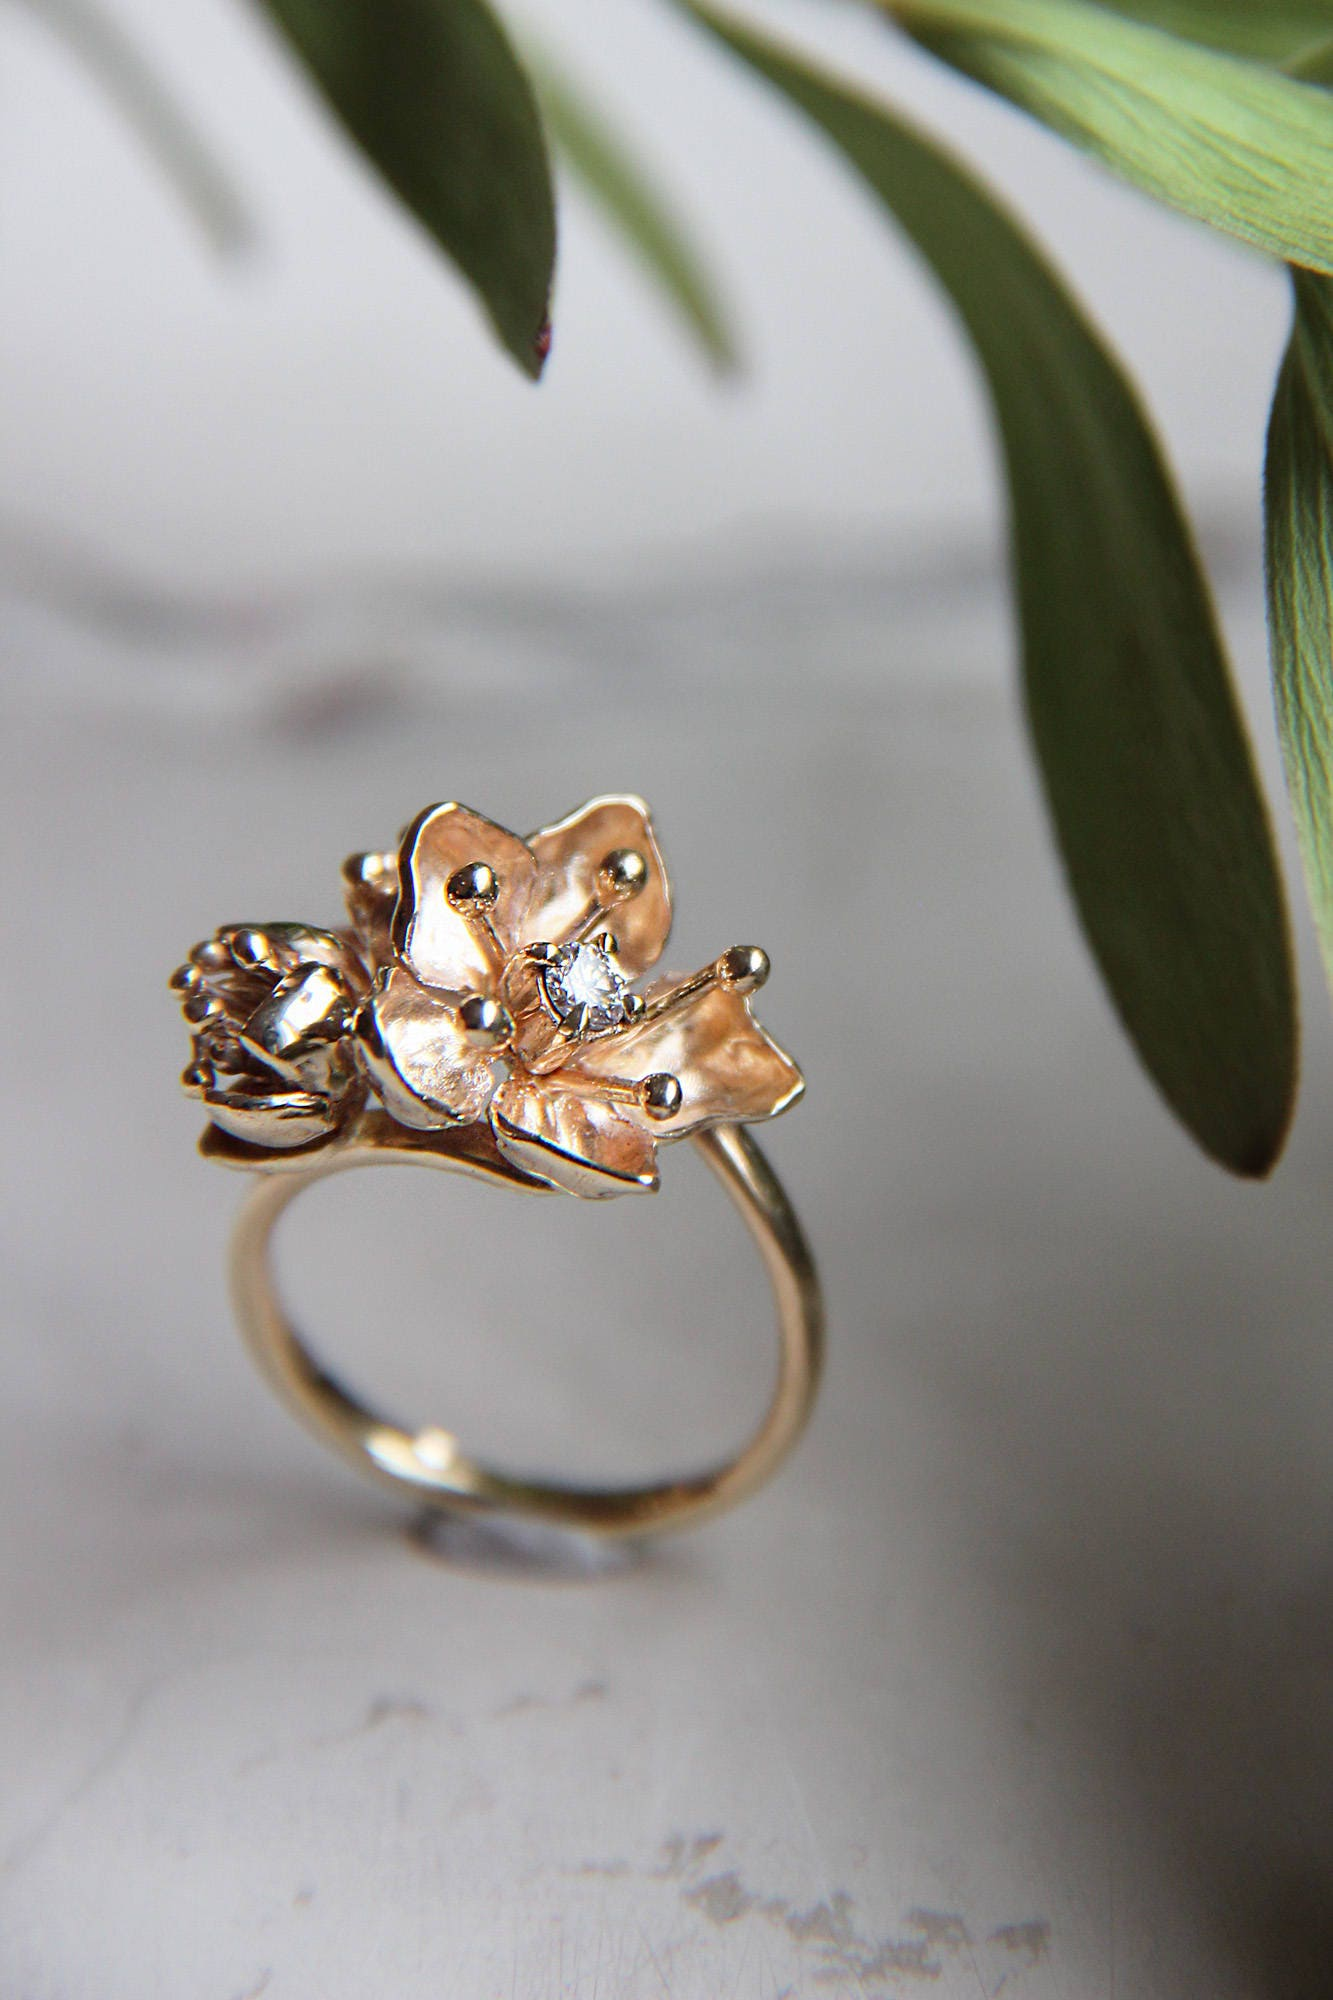 Unique engagement ring diamond ring gold flower ring yellow gold unique engagement ring diamond ring gold flower ring yellow gold ring flower engagement ring proposal ring romantic cherry blossom mightylinksfo